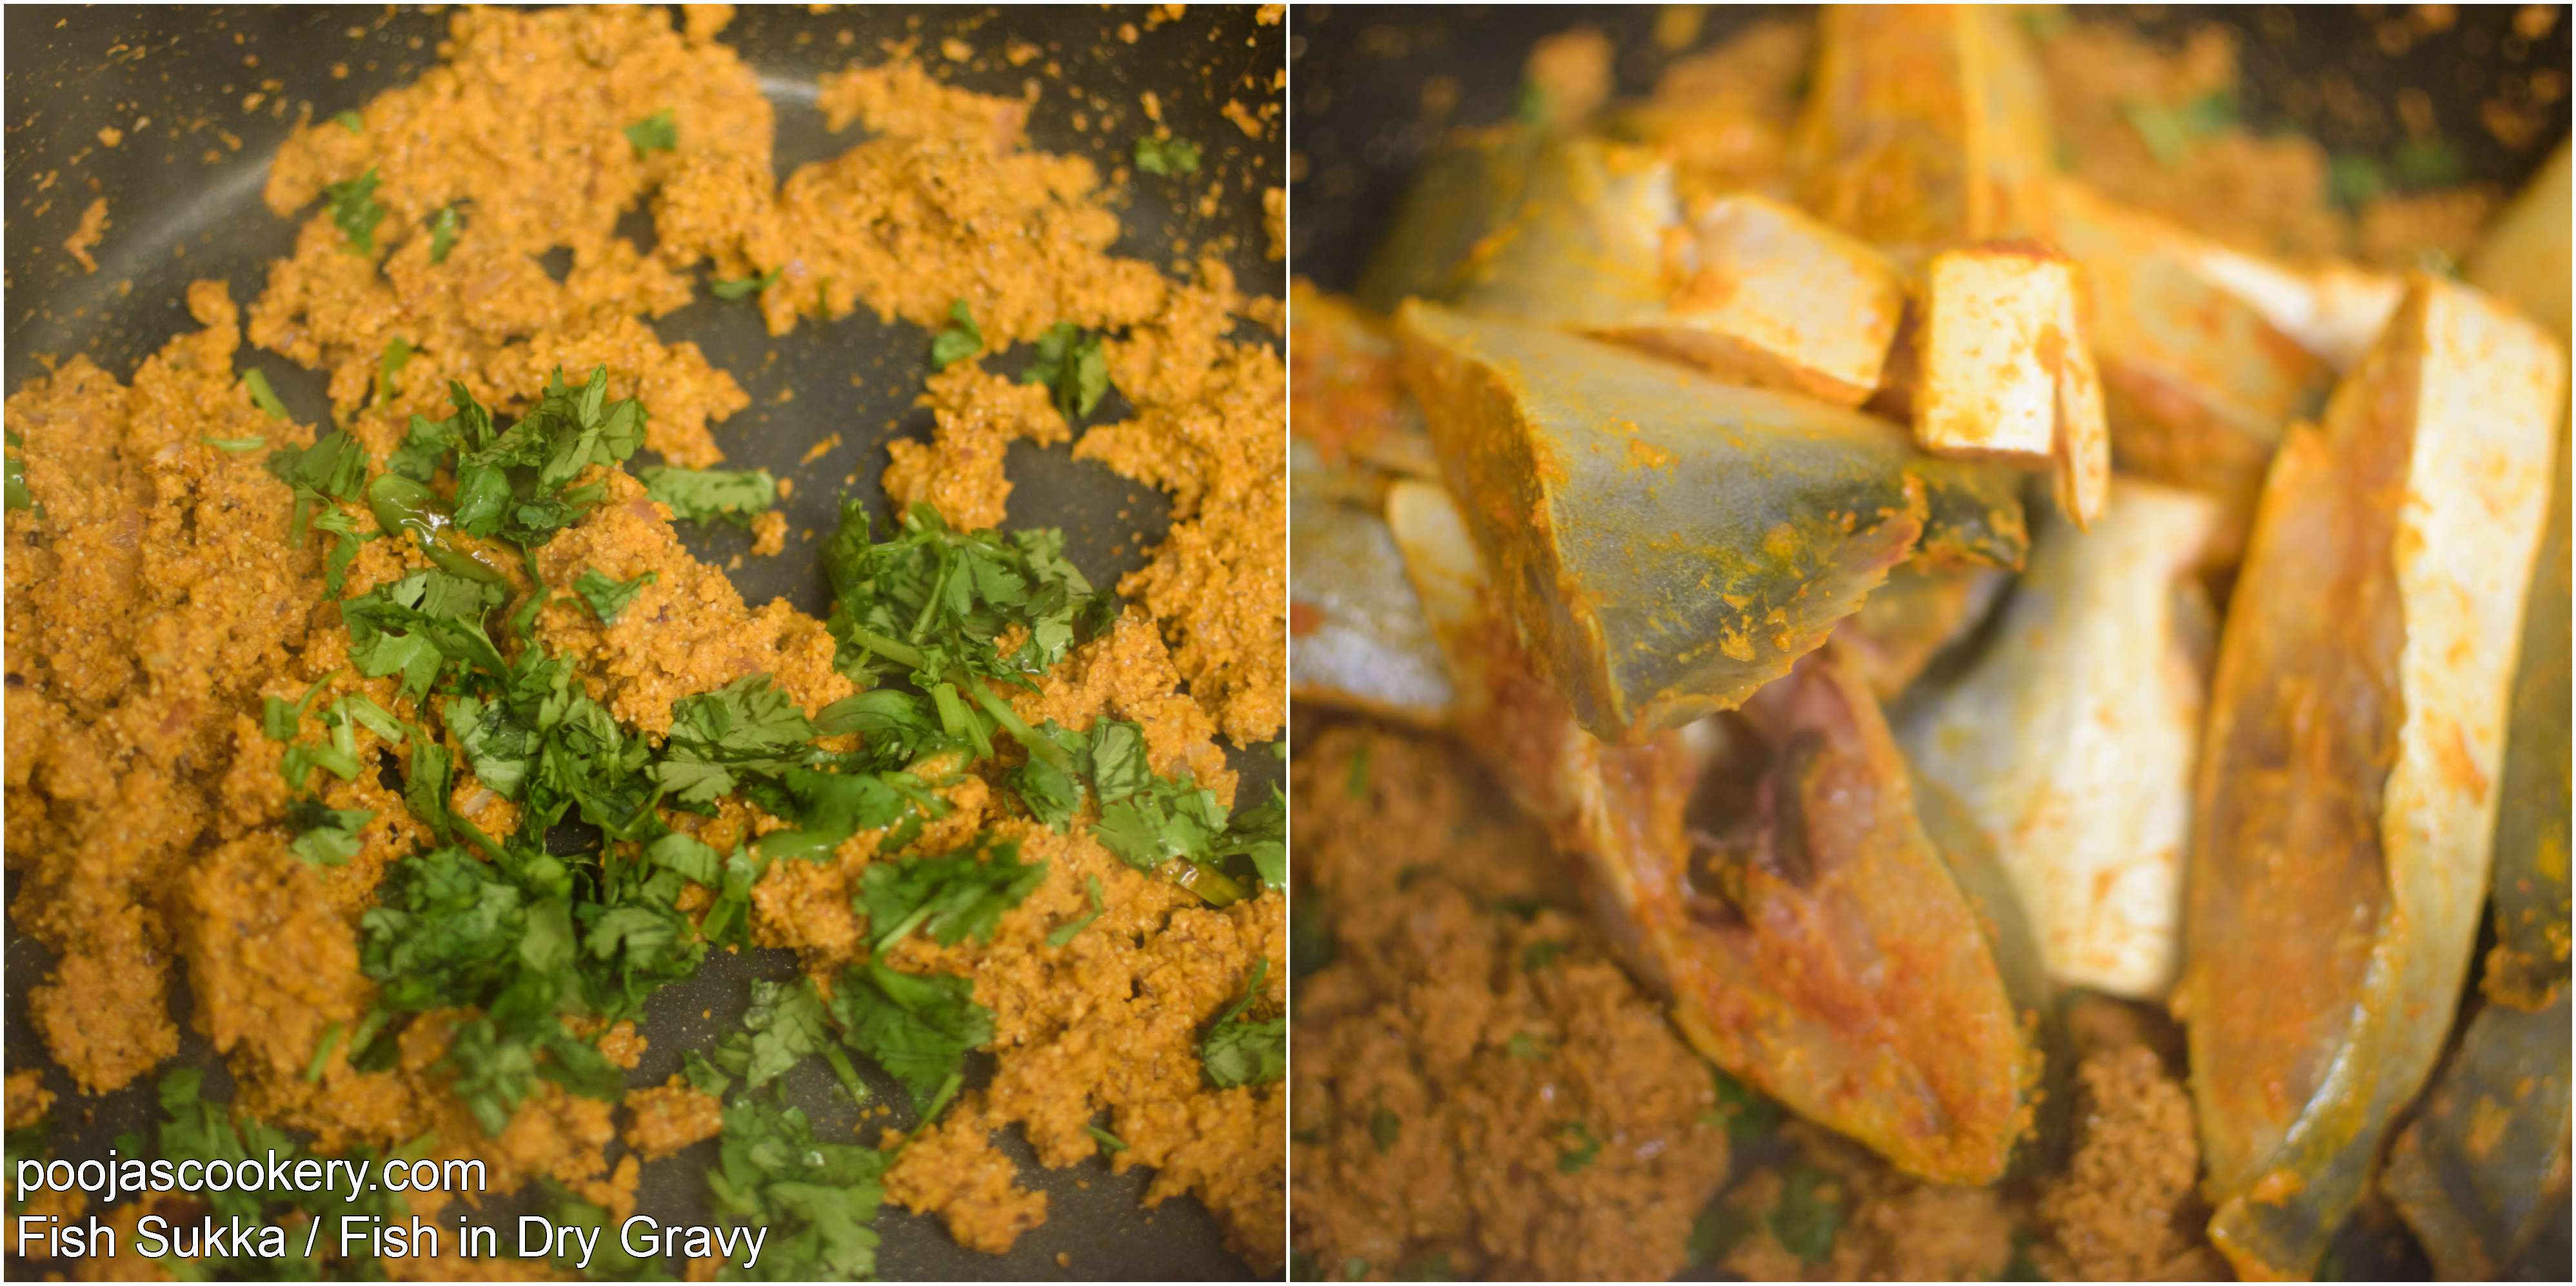 Coriander leaves and fish added to sauted paste| poojascookery.com